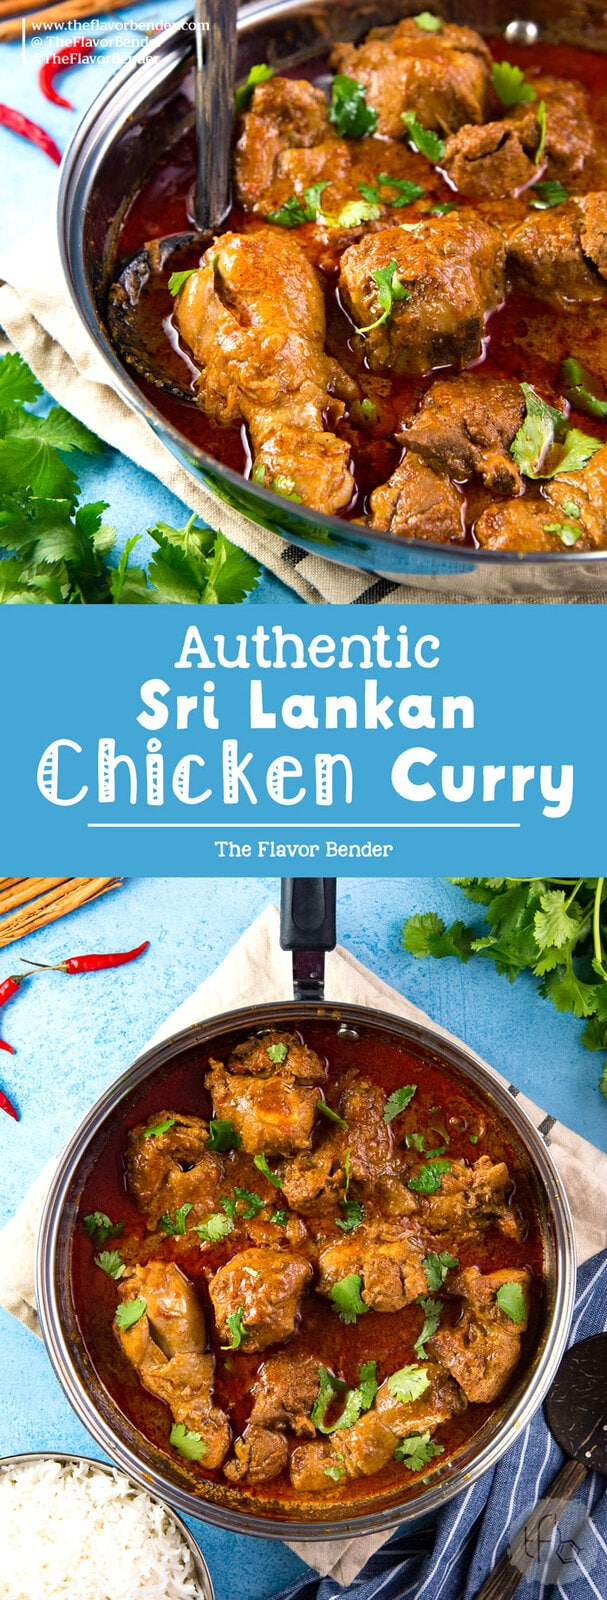 Learn how to make Authentic Sri Lankan Chicken Curry with these tips and variations for the best ever chicken curry with or without coconut milk! Spicy, flavorful and fragrant!